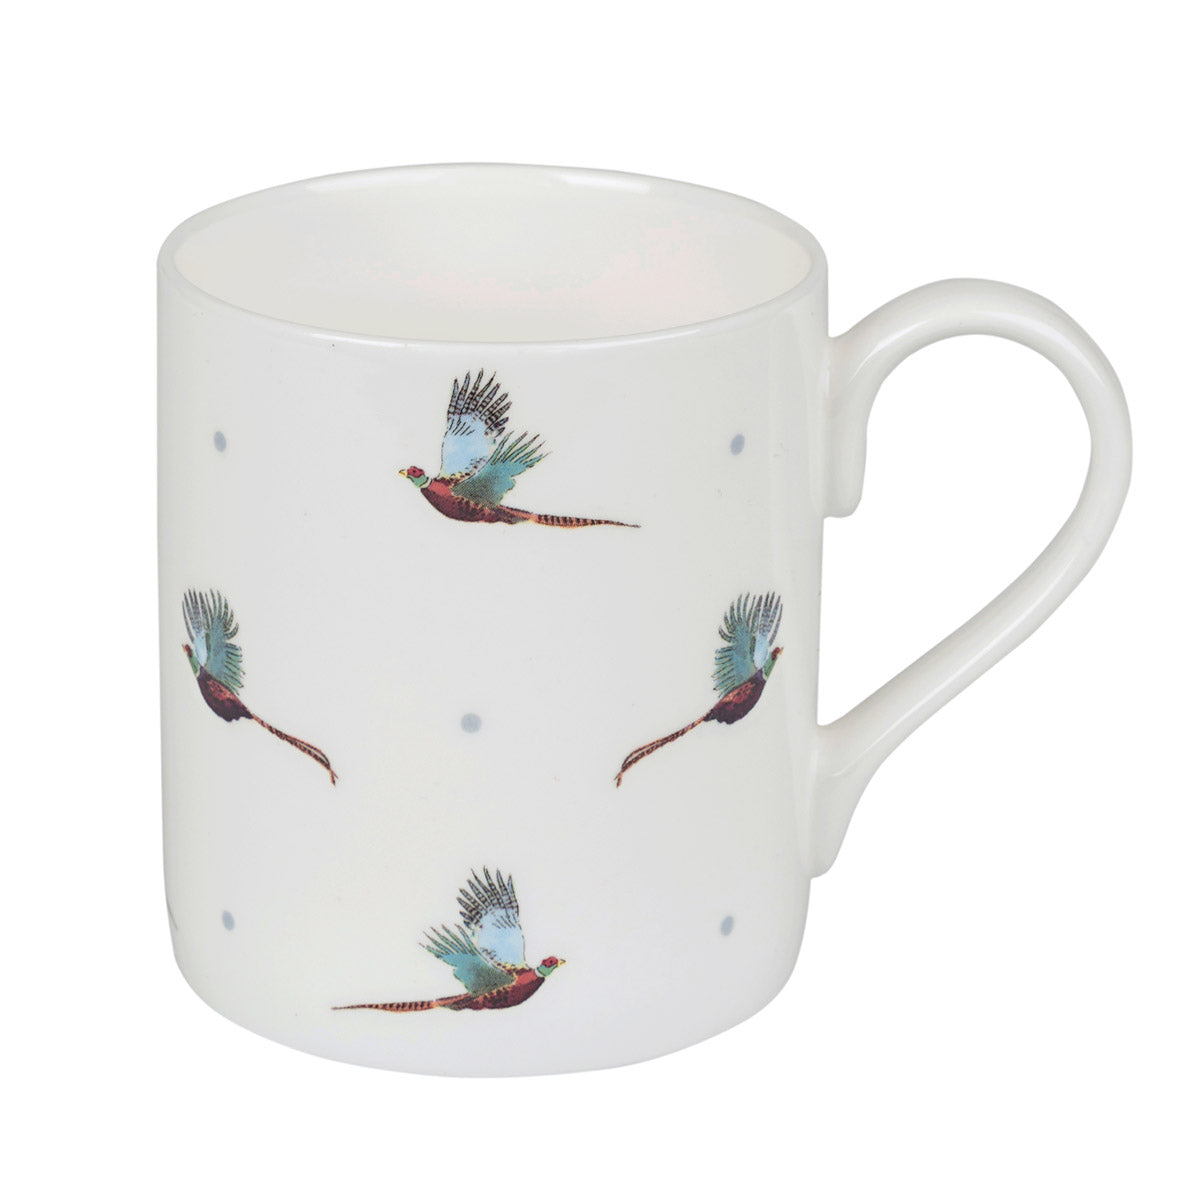 Flying Pheasant Mug